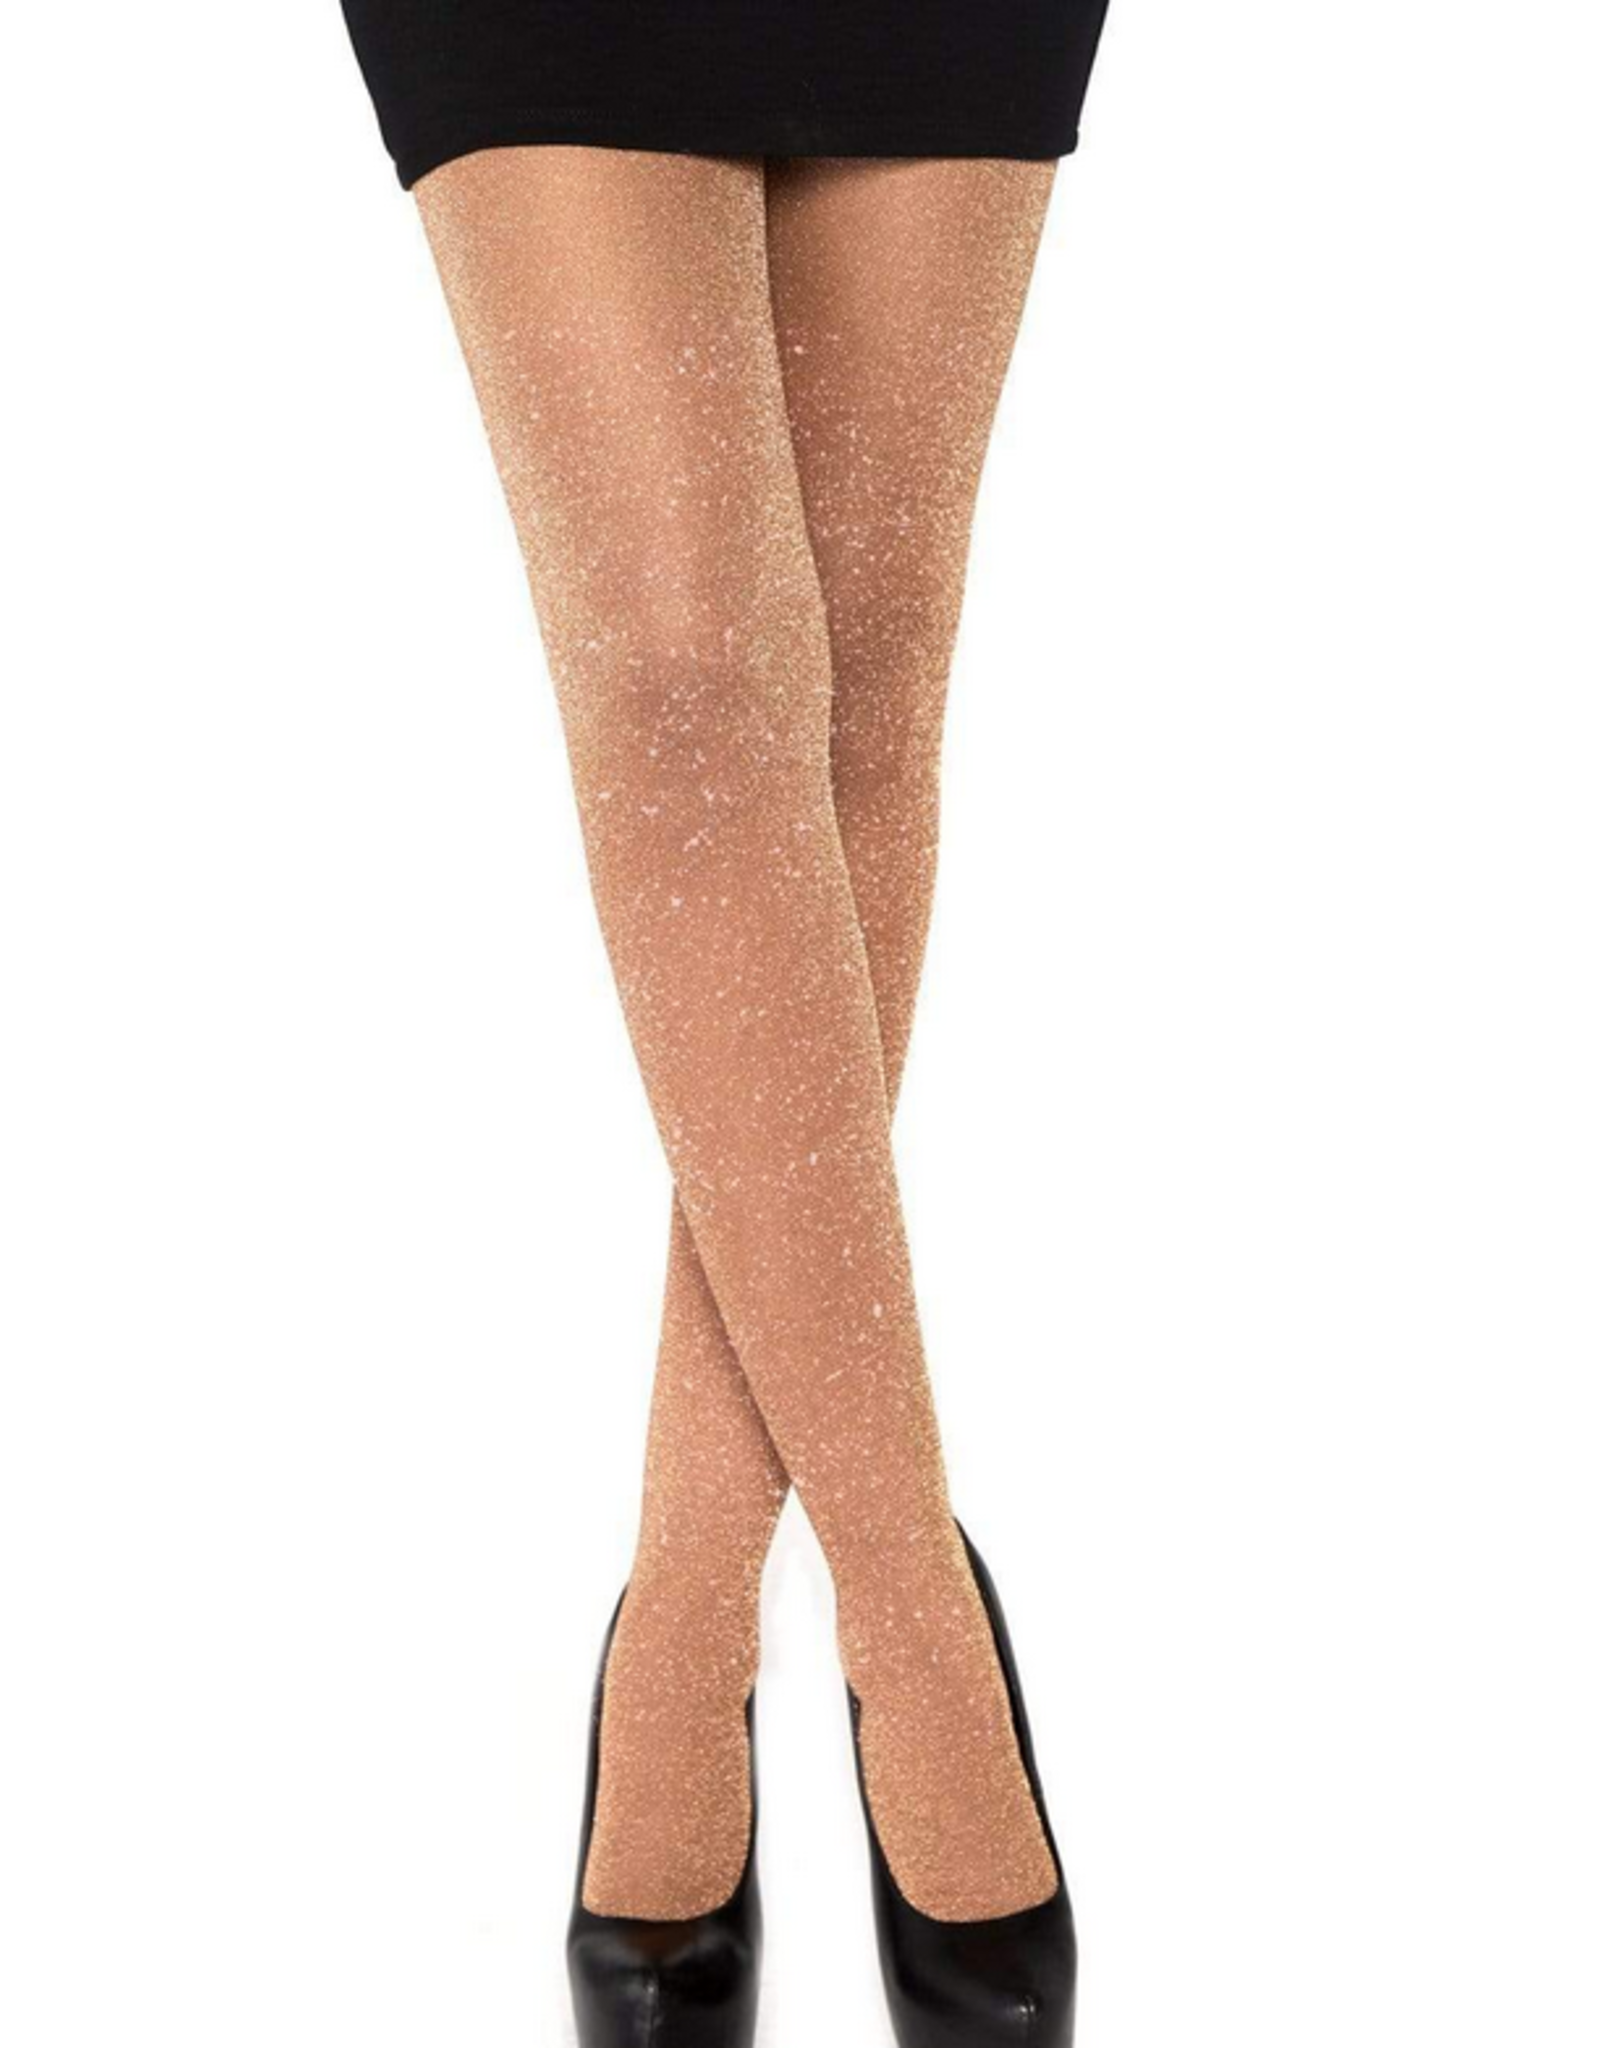 TIGHTS-LUREX TIGHTS, ROSE GOLD